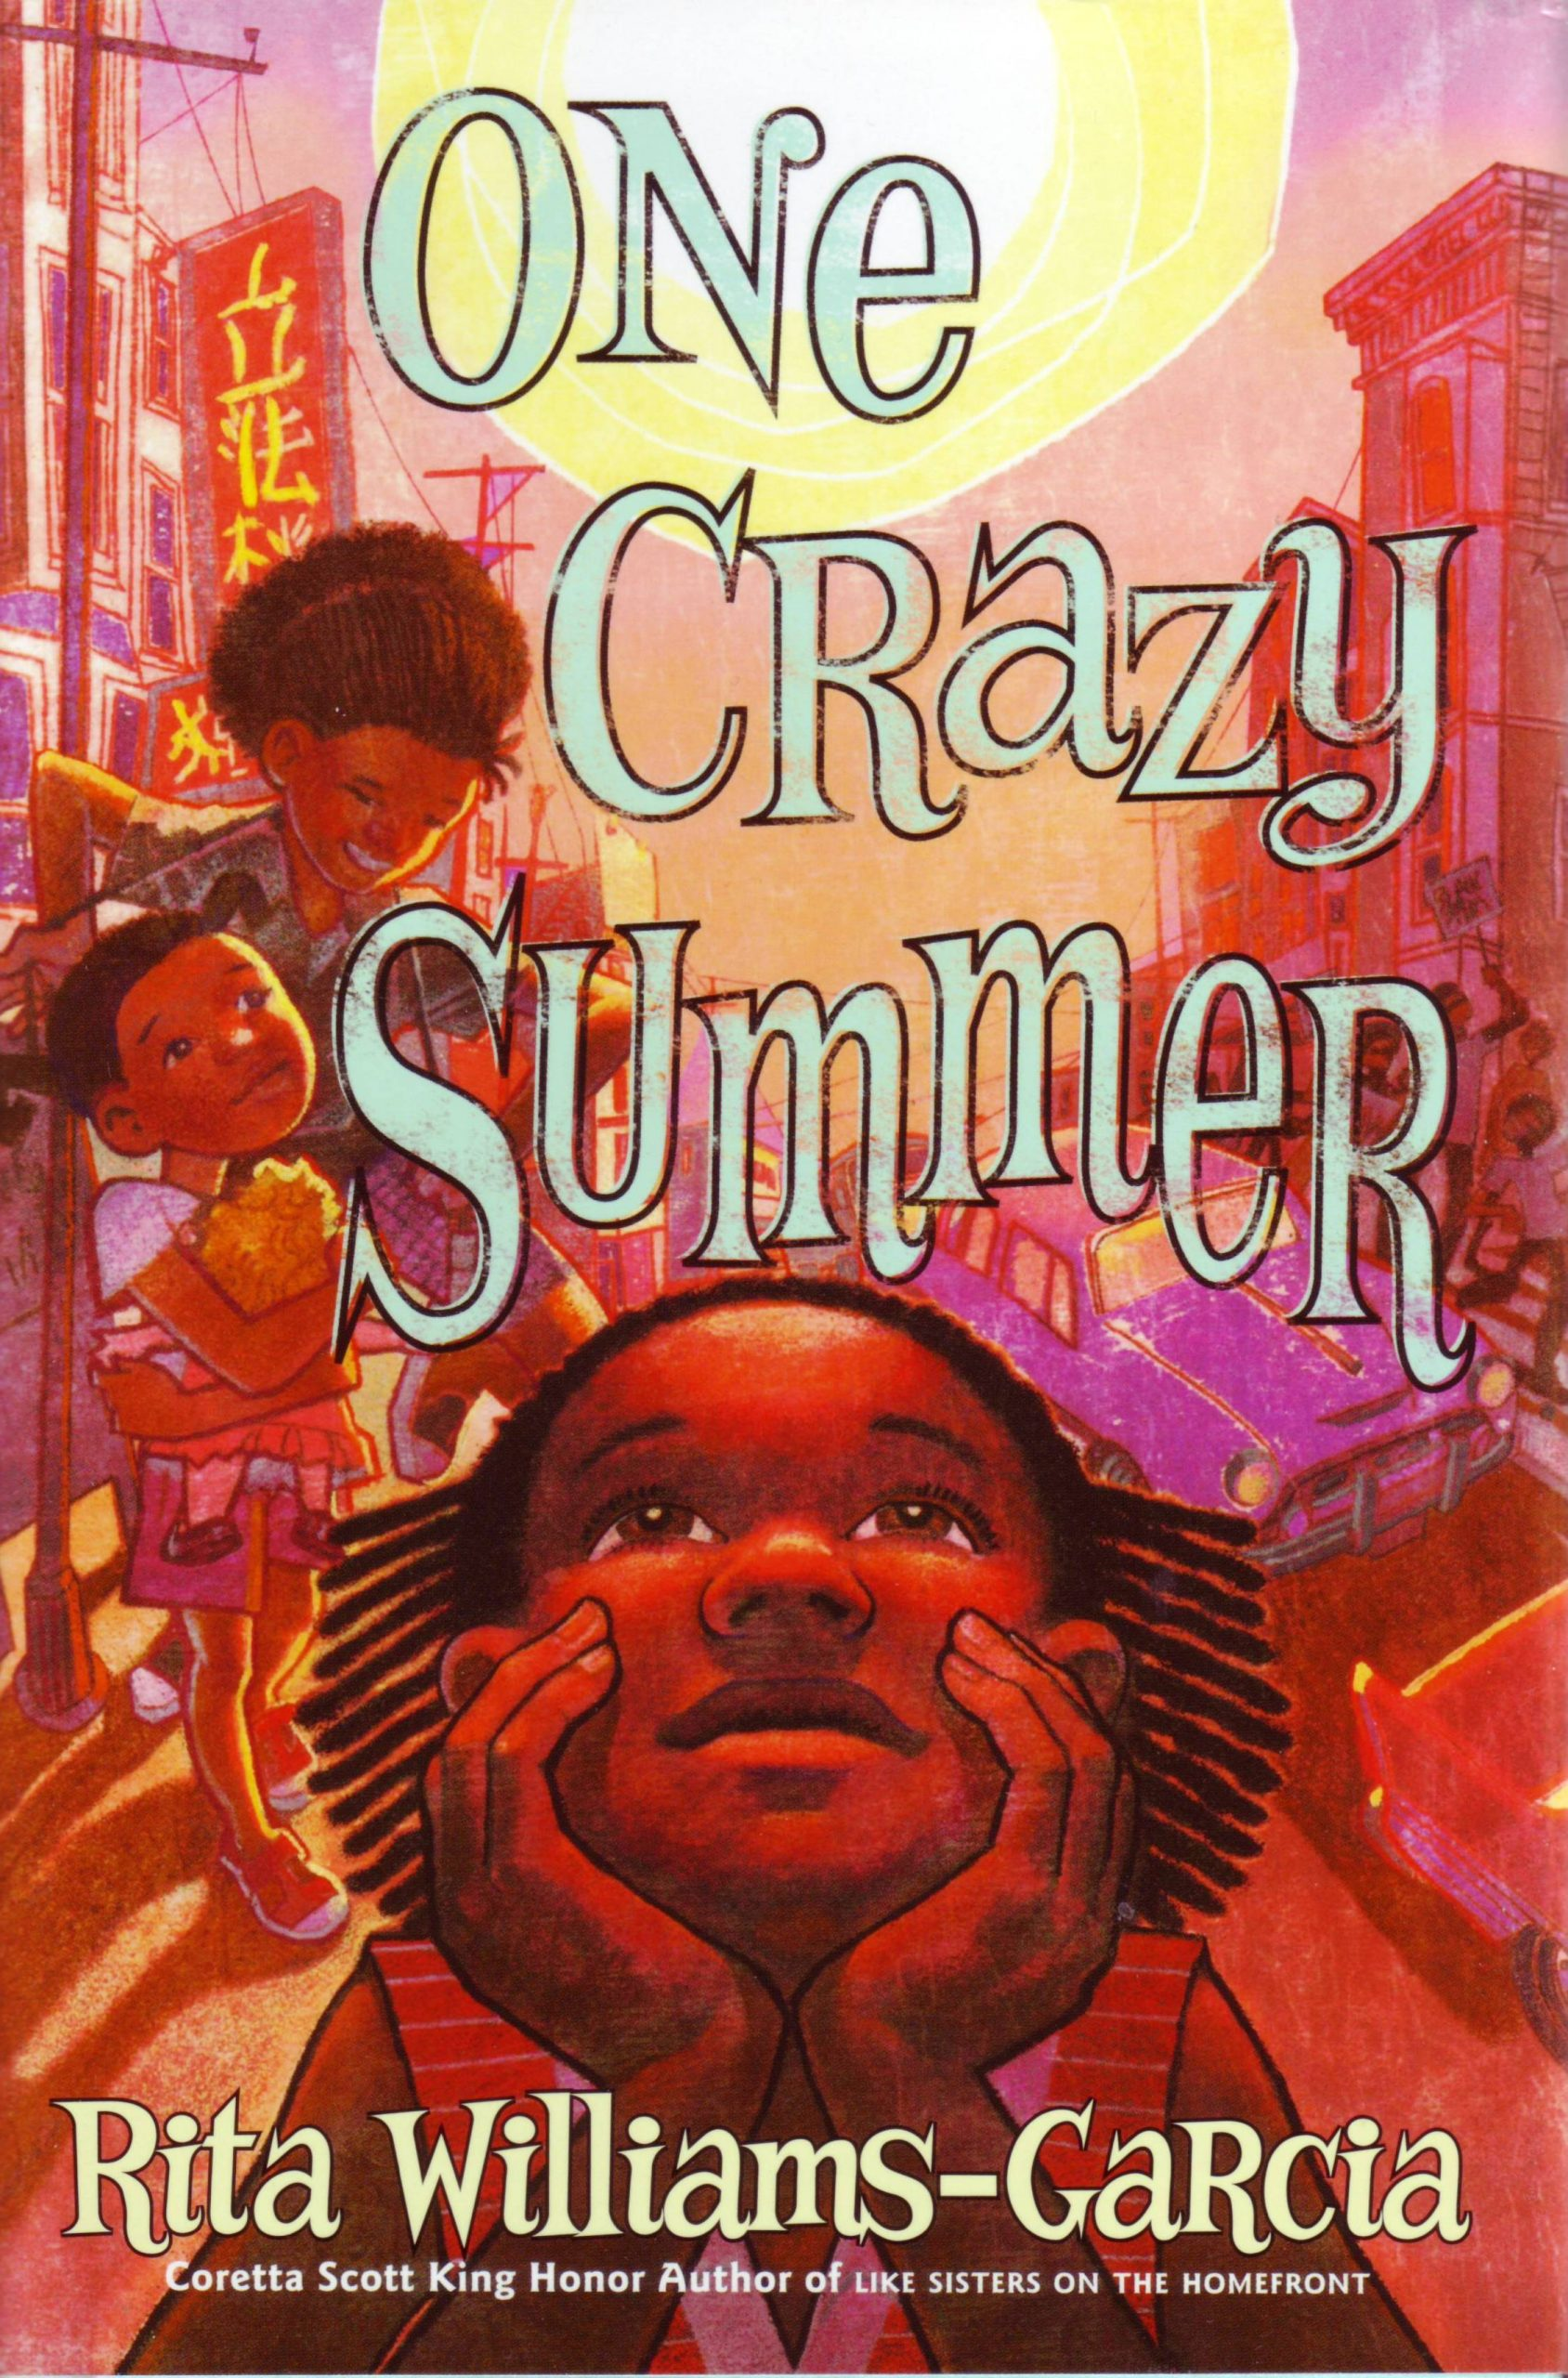 road trip audiobooks: One Crazy Summer